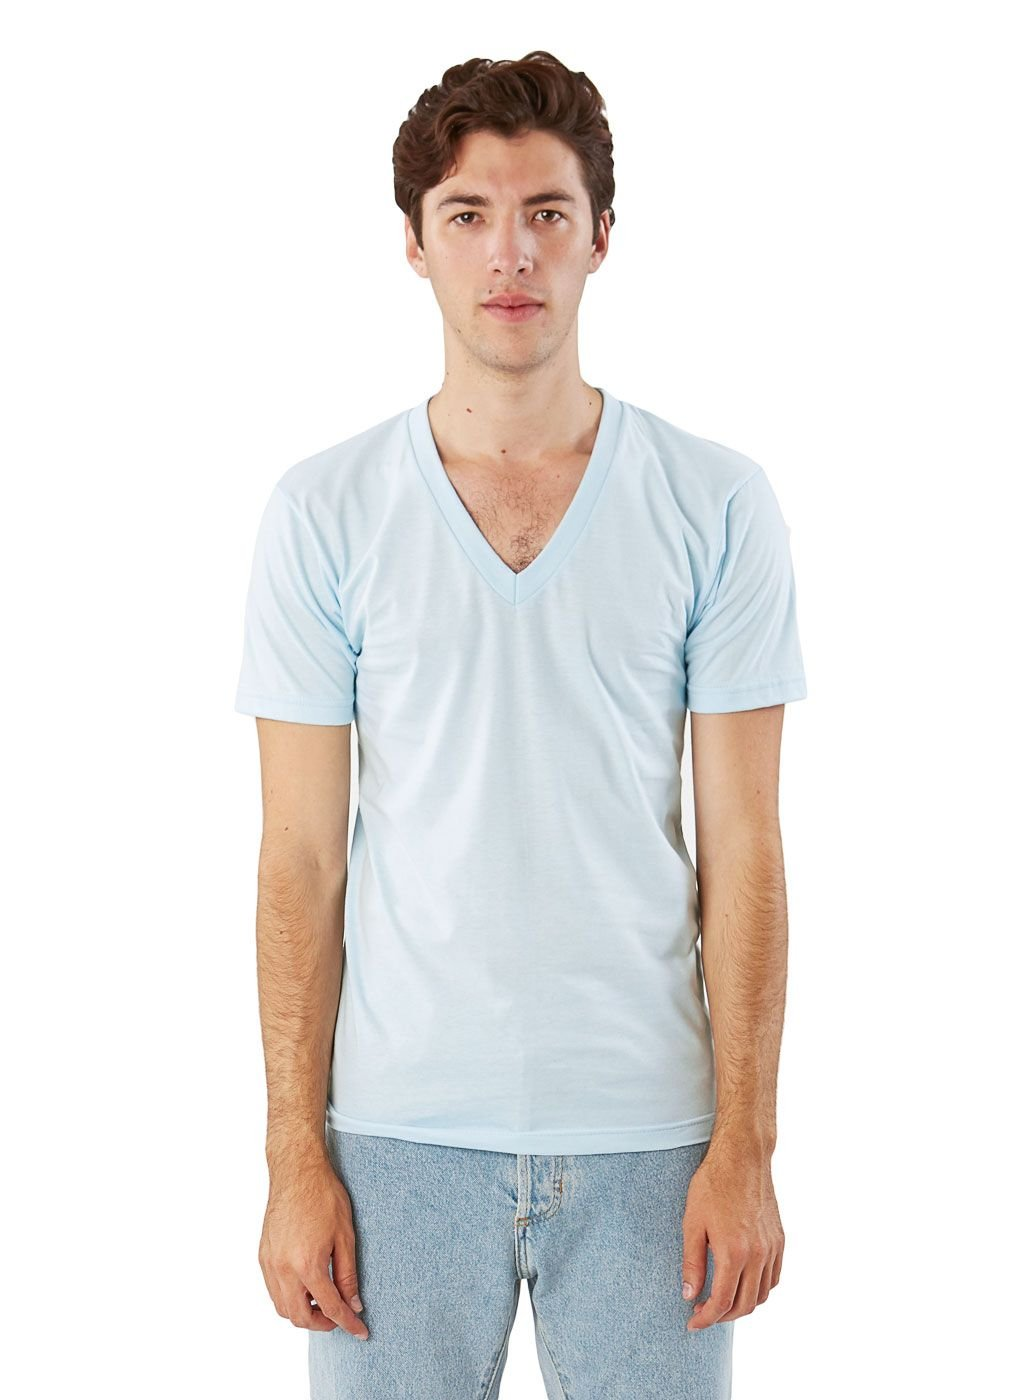 American Apparel Men Fine Jersey V-Neck T-Shirt Size L Light Blue